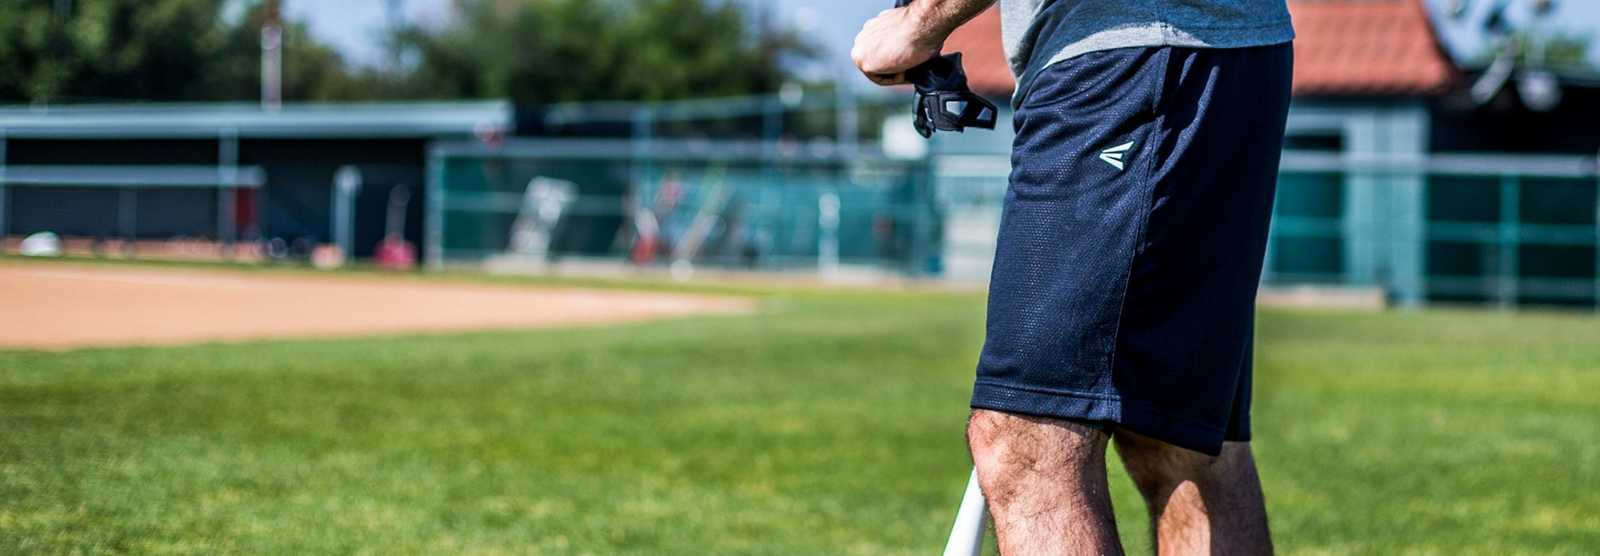 48172ffeb4c81 Baseball Shorts | Shop Woven & Slider Shorts for Men | Easton